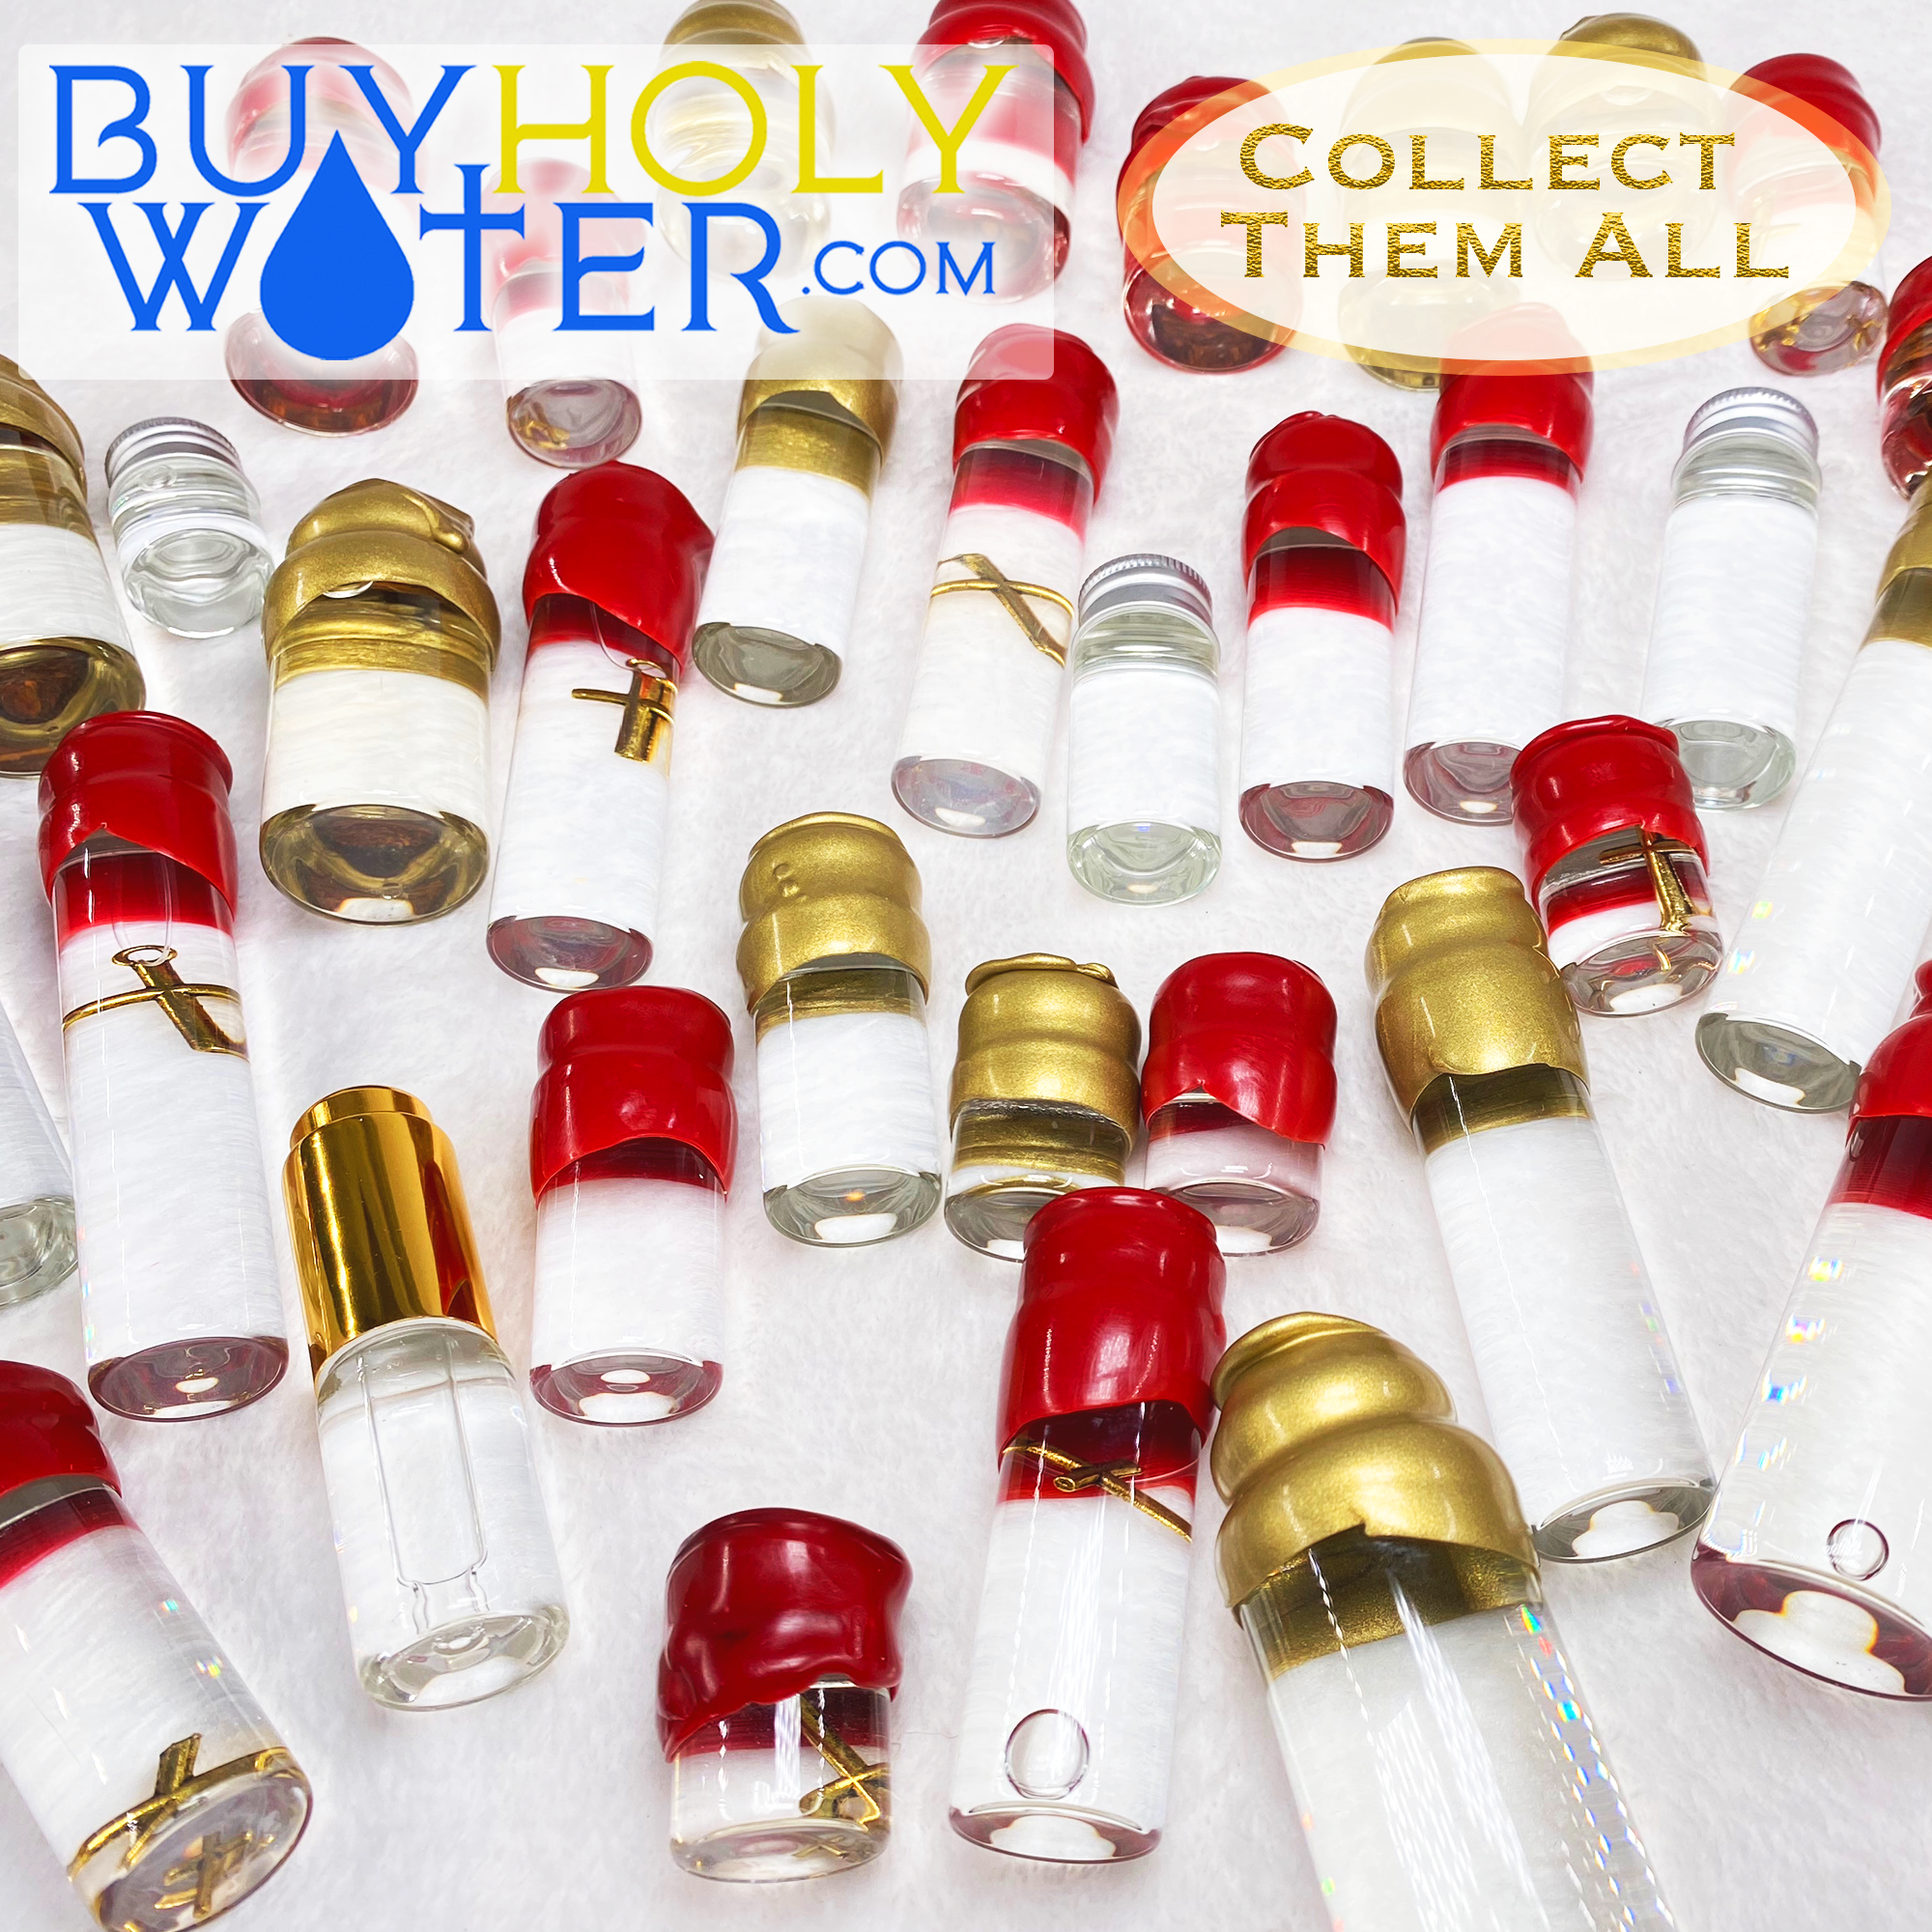 Gold Wax Spiritual Holy Water Limited 15mL Vial Hand Made Numbered To 100. - $27.99